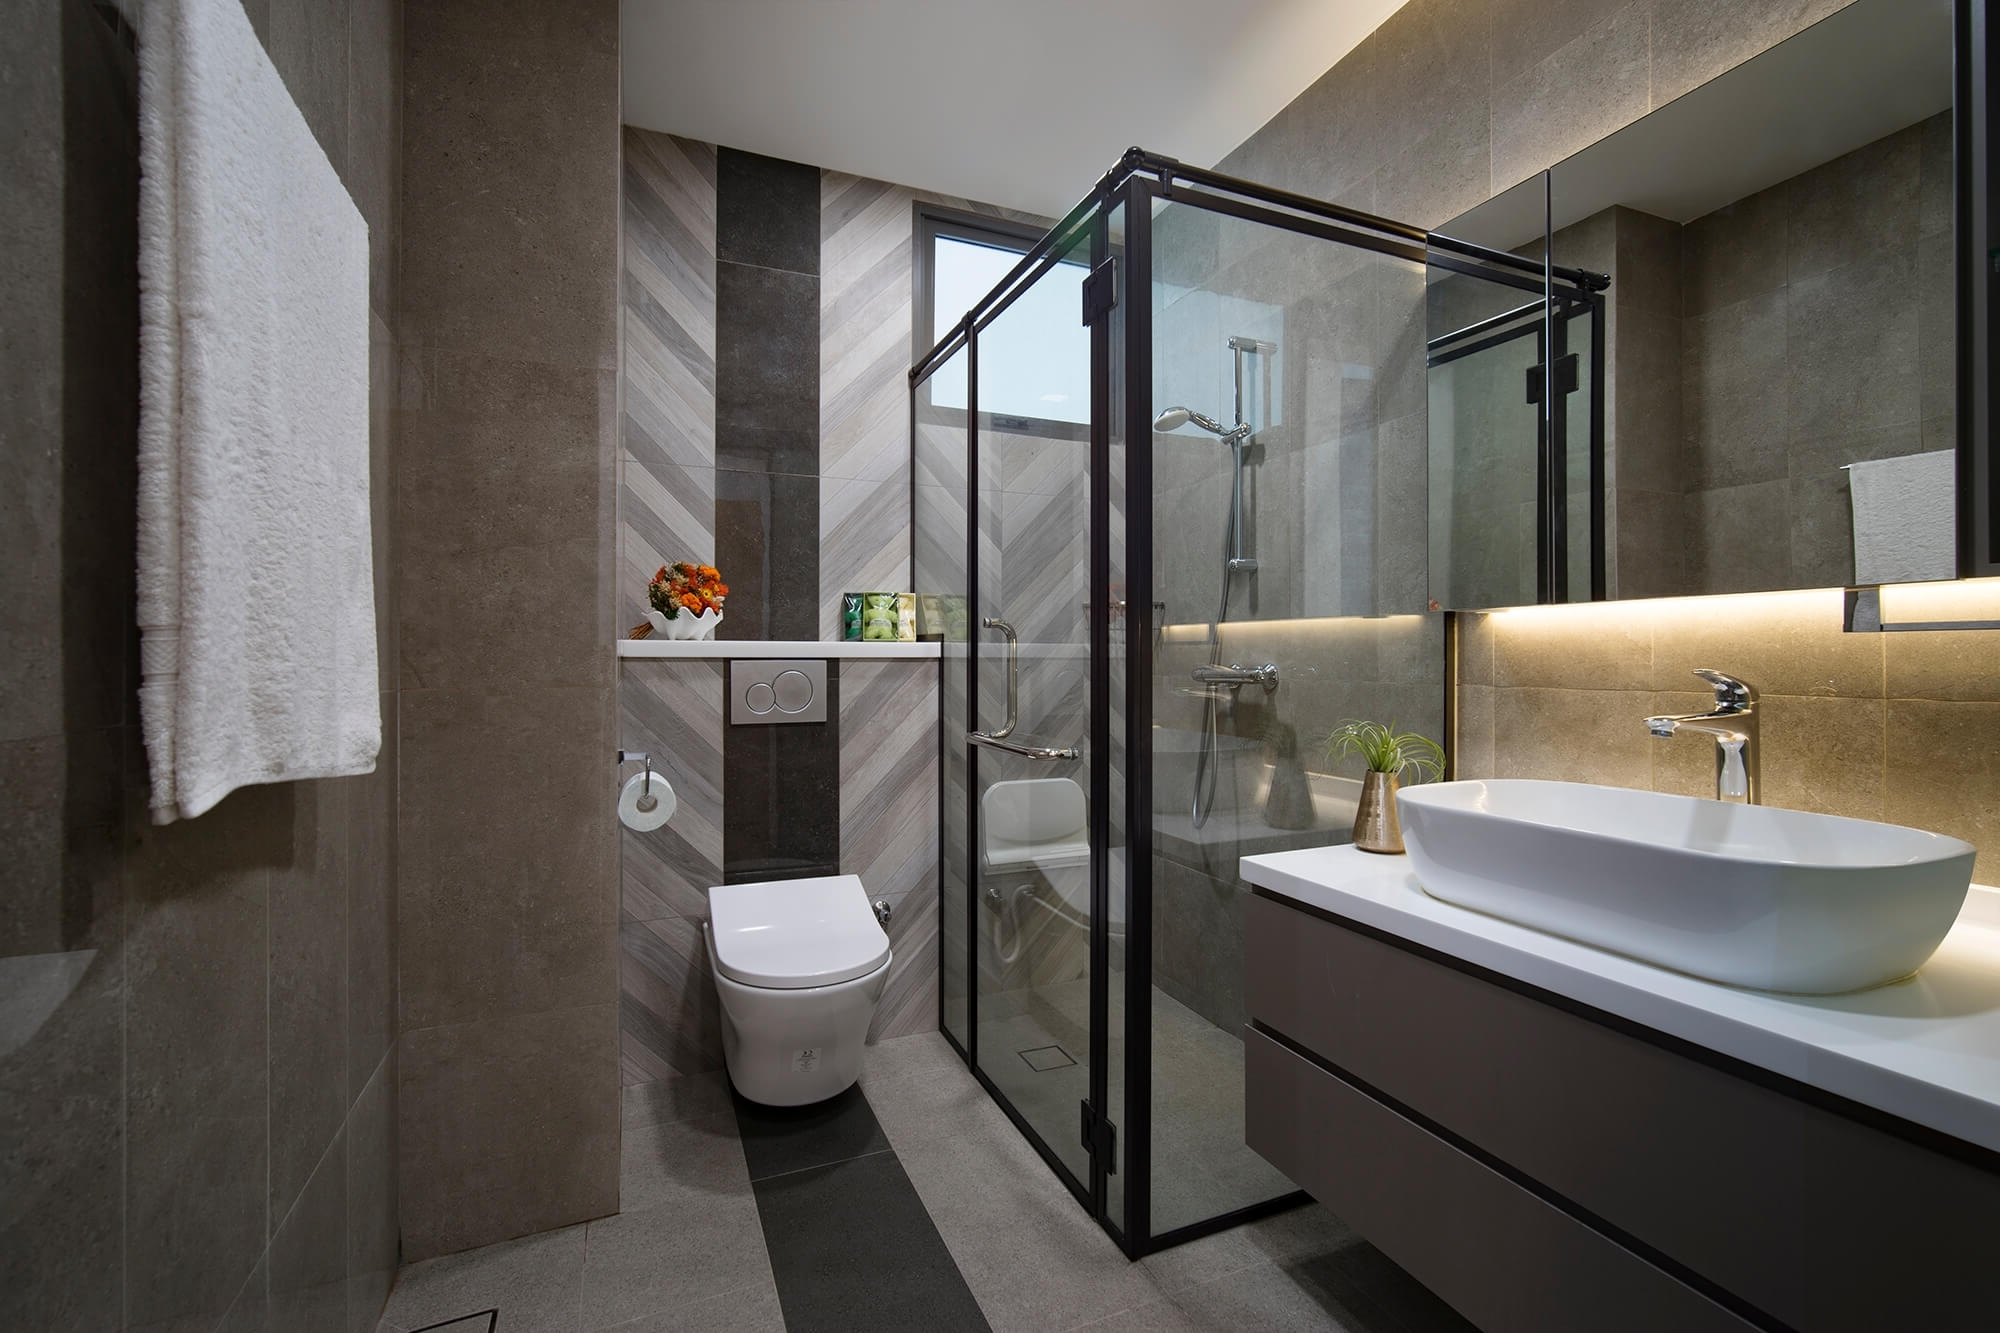 Things You Wish You'D Been Told About Bathroom Renovations 20+ Hdb Bathroom Design Singapore Ideas